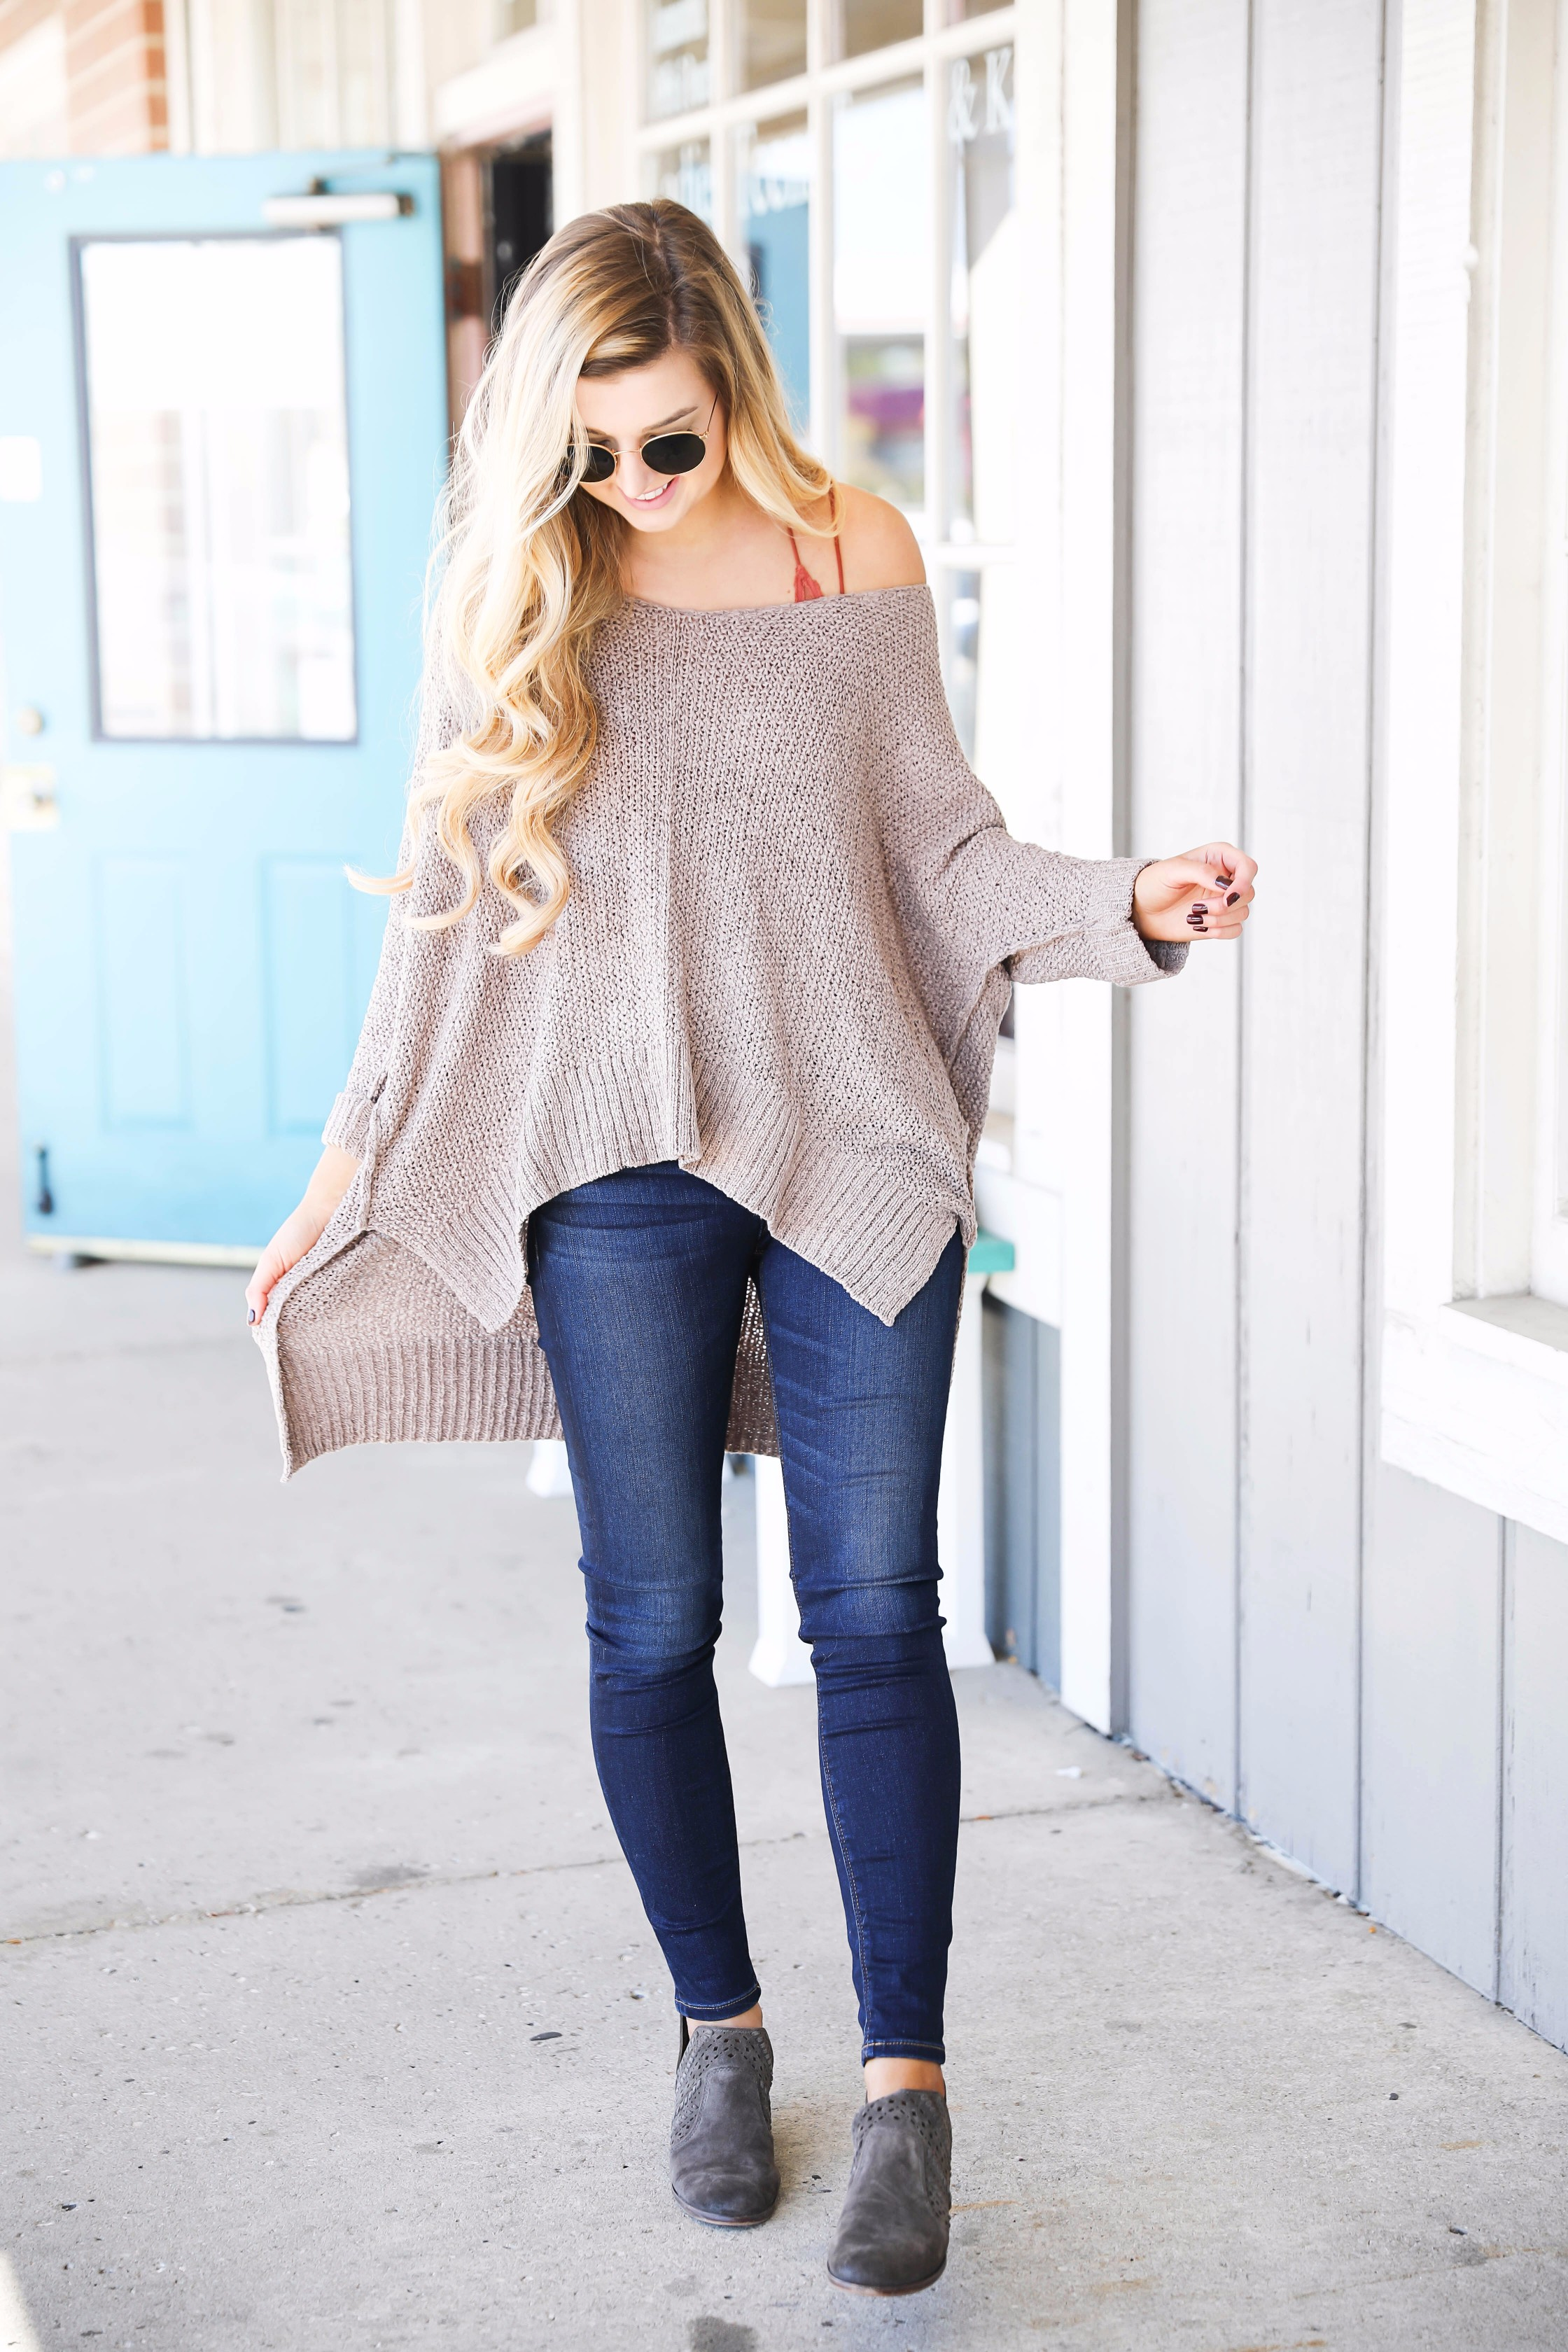 d363a2318d Slouchy off the shoulder sweater with a lace free people bralette! Super  cute fall outfit ...